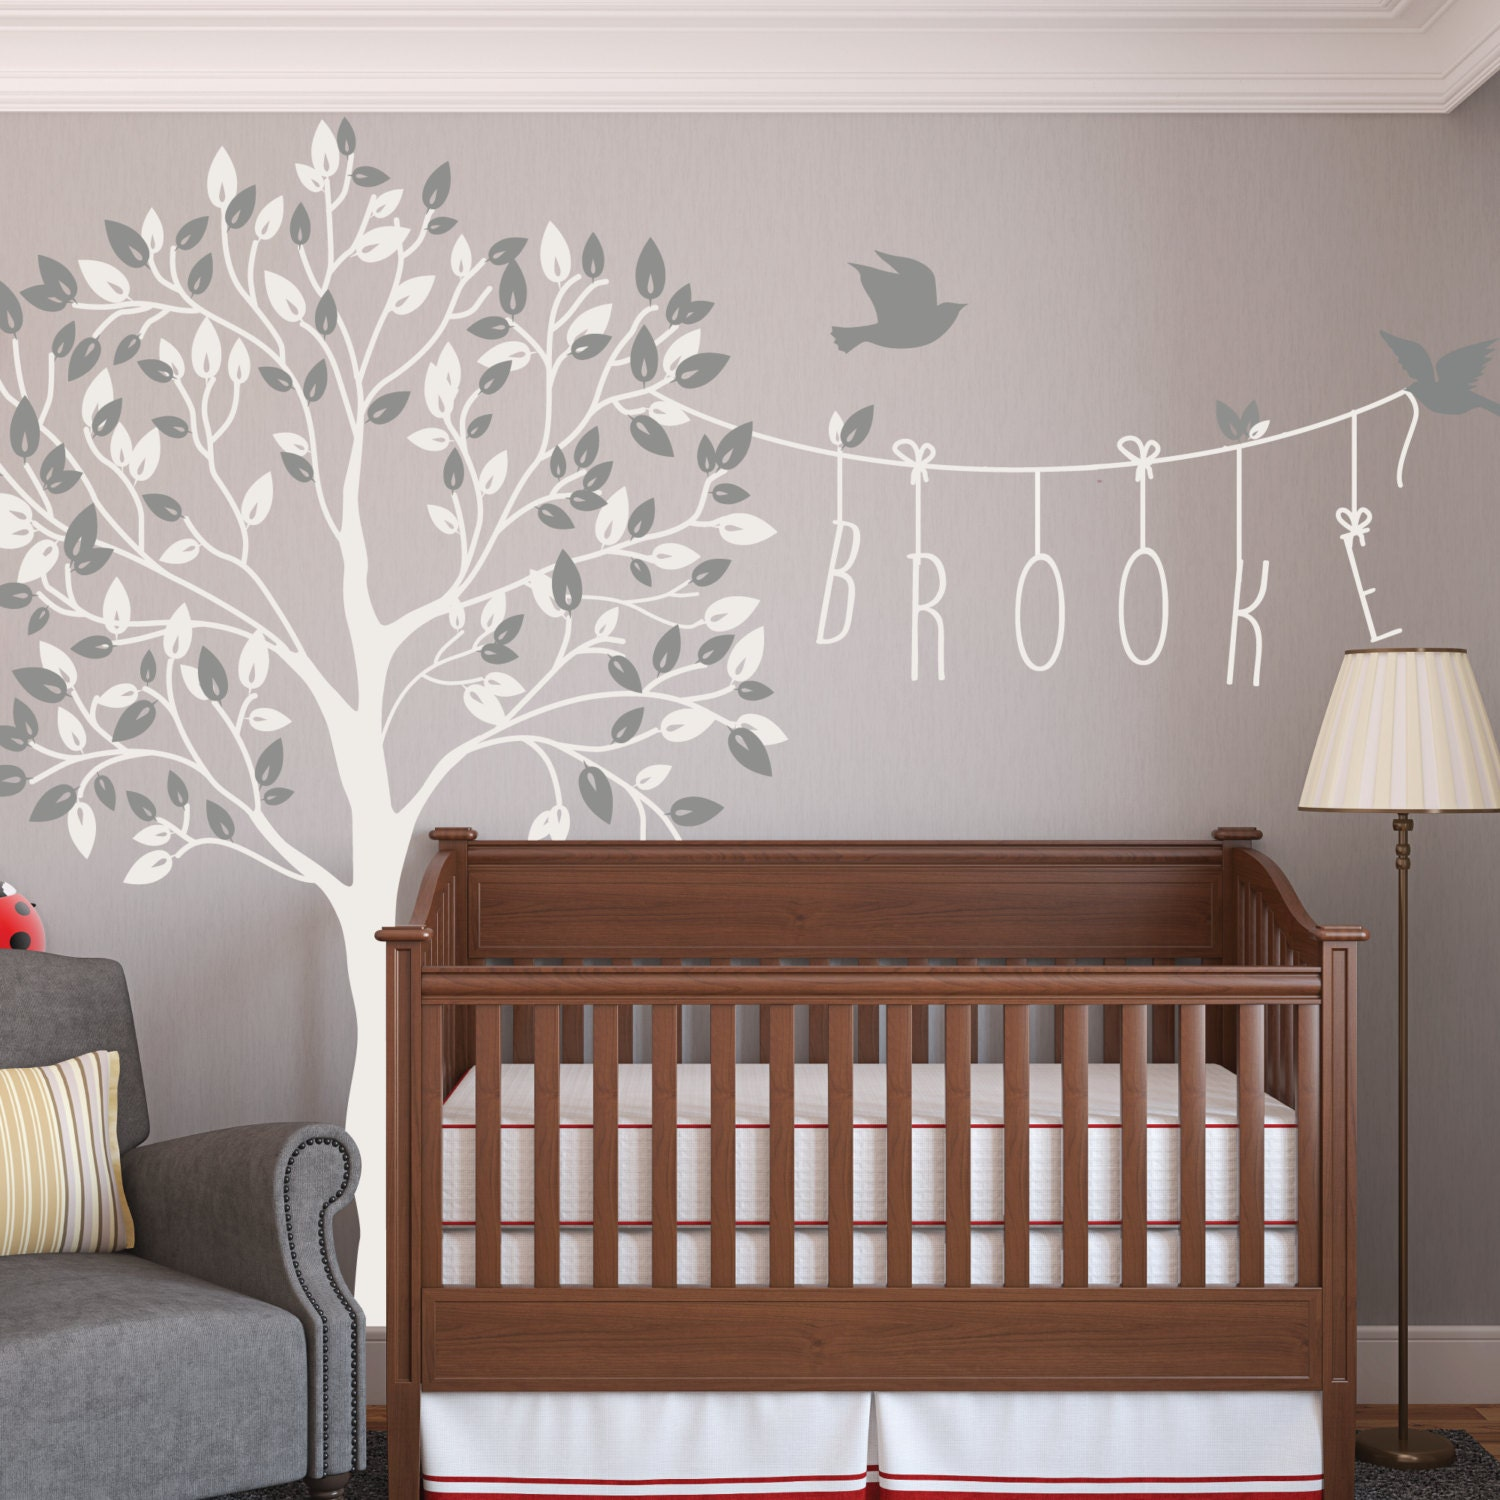 Wall Decor Stickers Nursery : Nursery tree name wall decals with birds decal kids